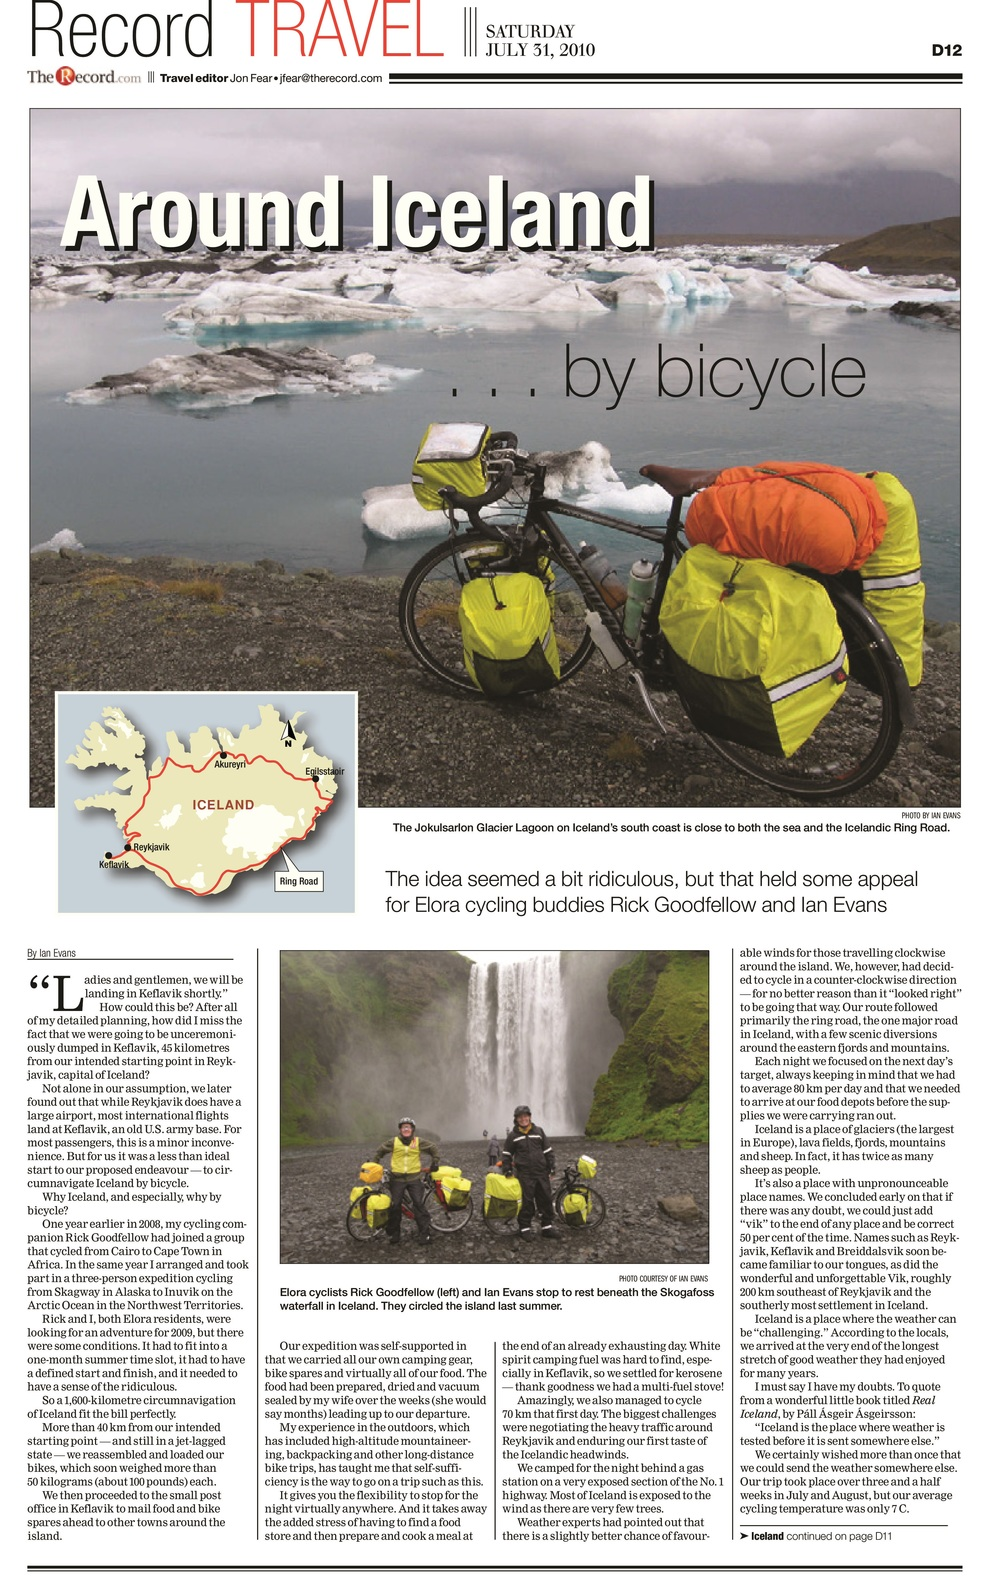 Iceland page 1.jpg